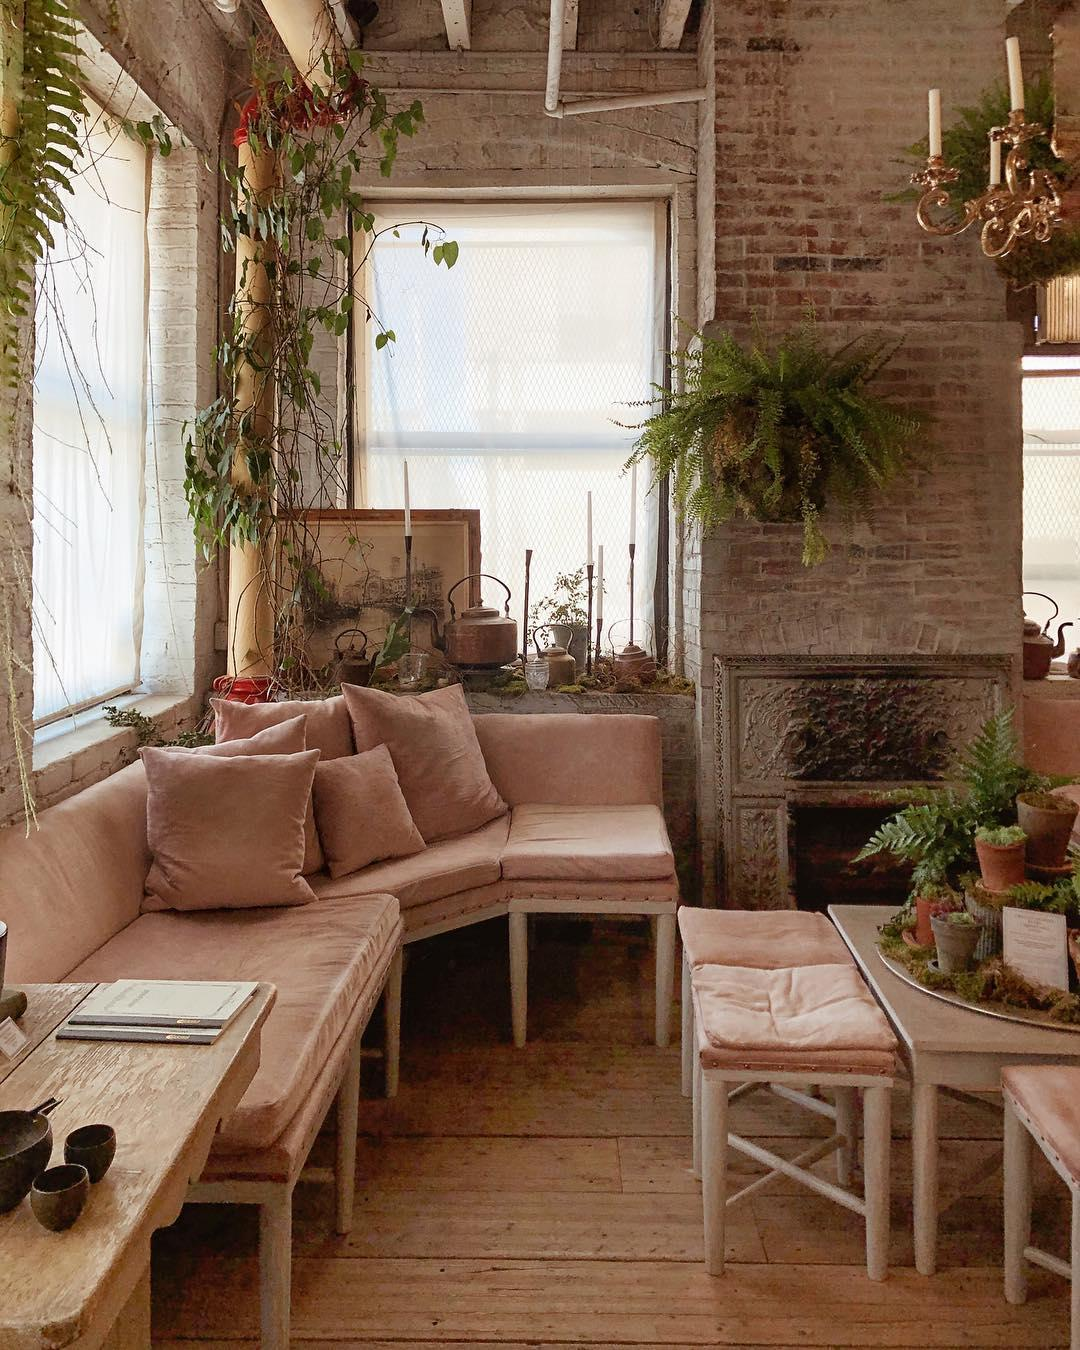 25 Tea Rooms From Around The World That You Have To Check Out